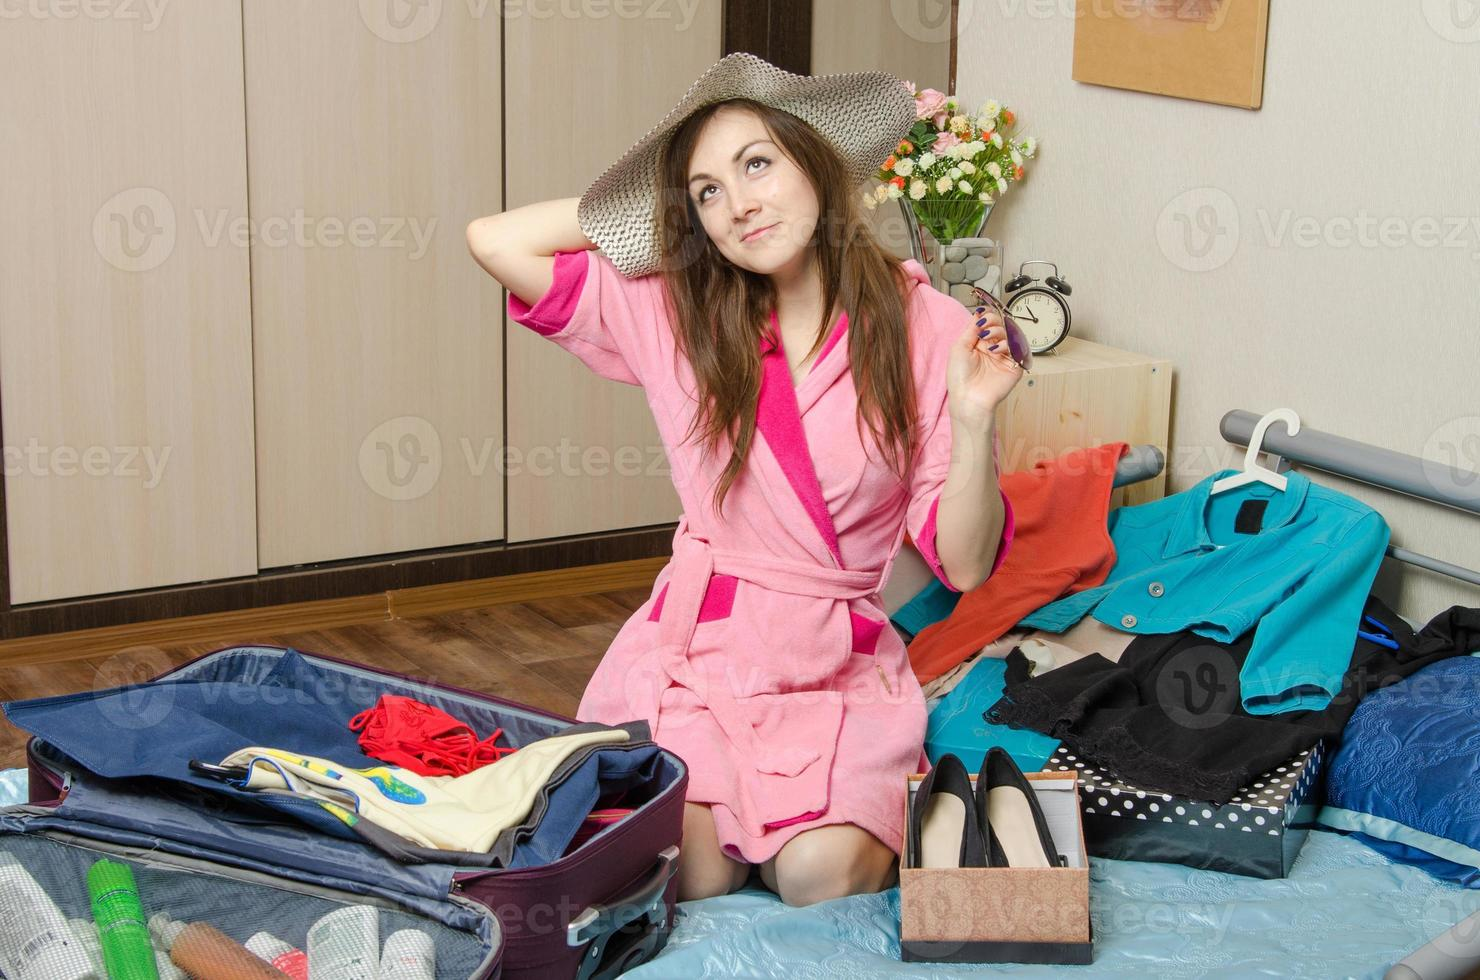 Girl dreaming of vacation packing the suitcases photo